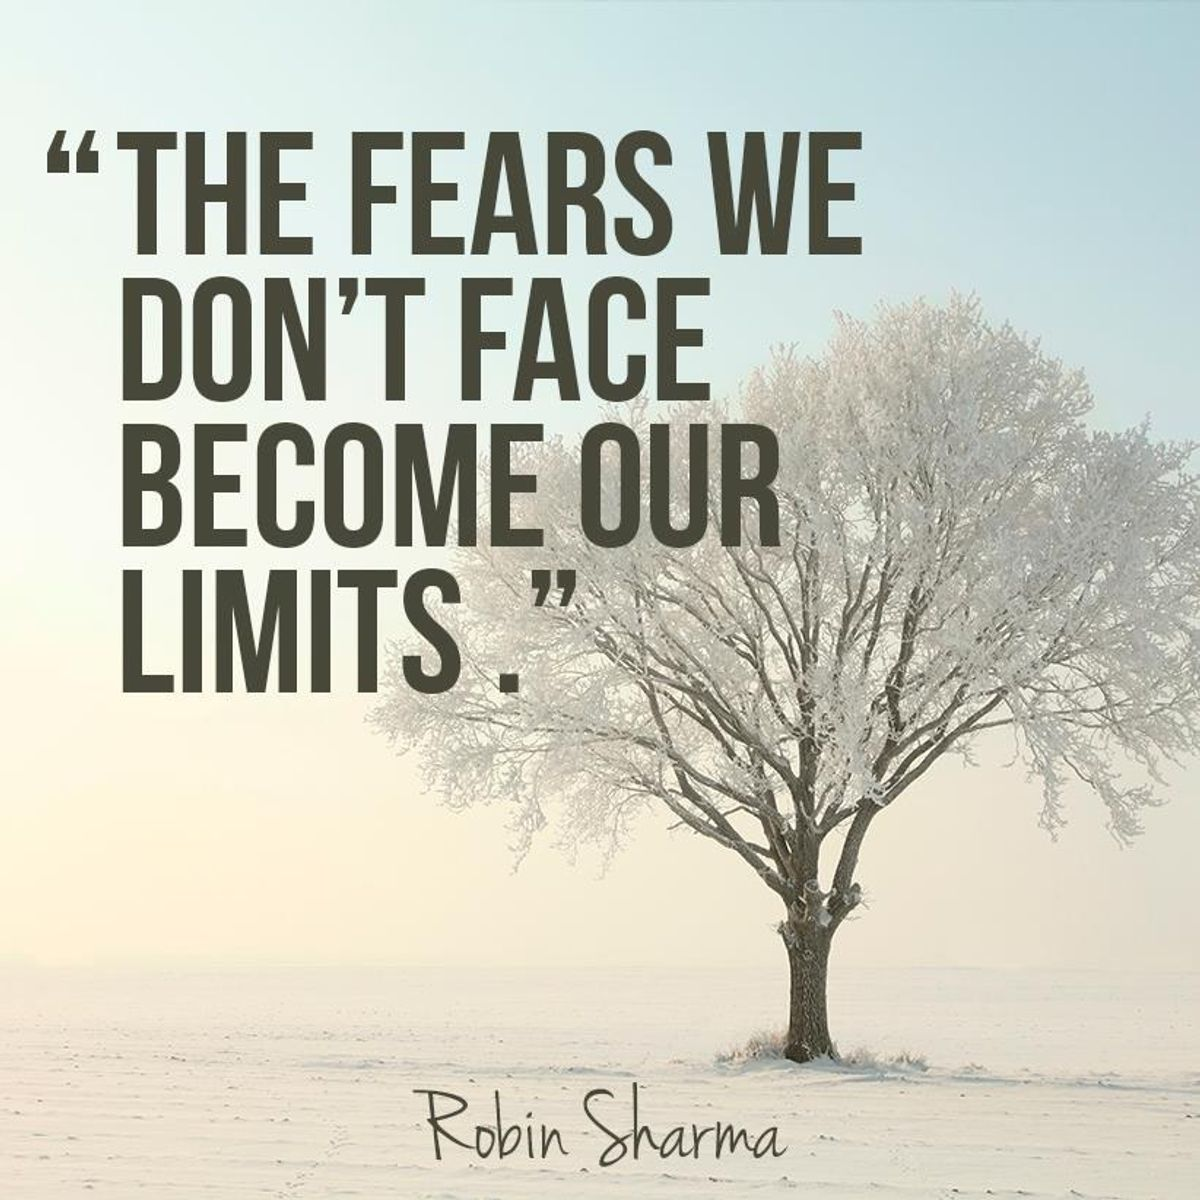 100 Days Without Fear.